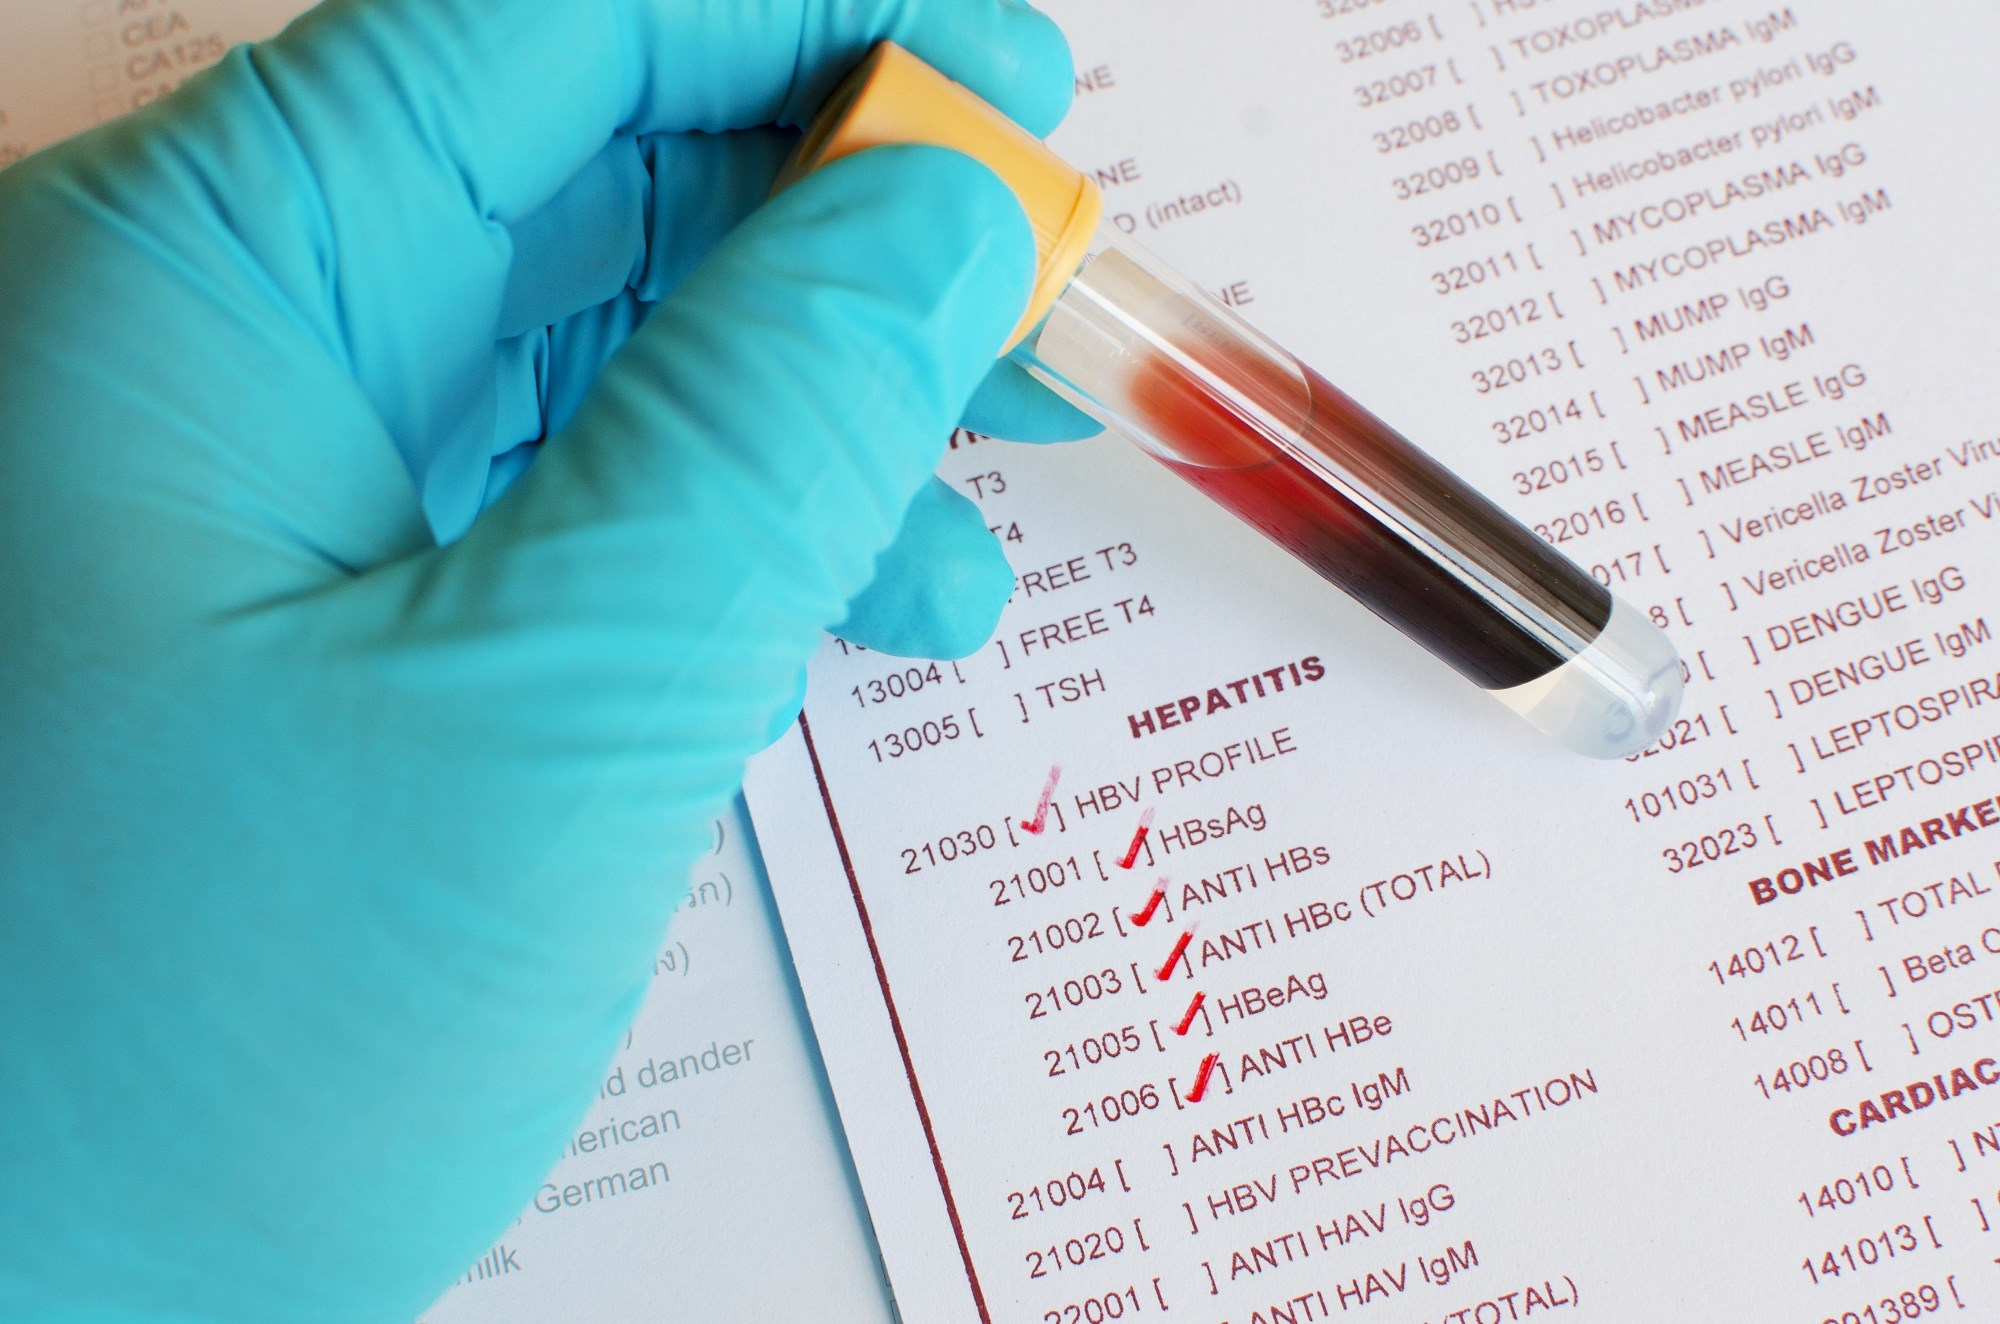 Clinician Support Can Increase Viral Hepatology Screening in Migrants